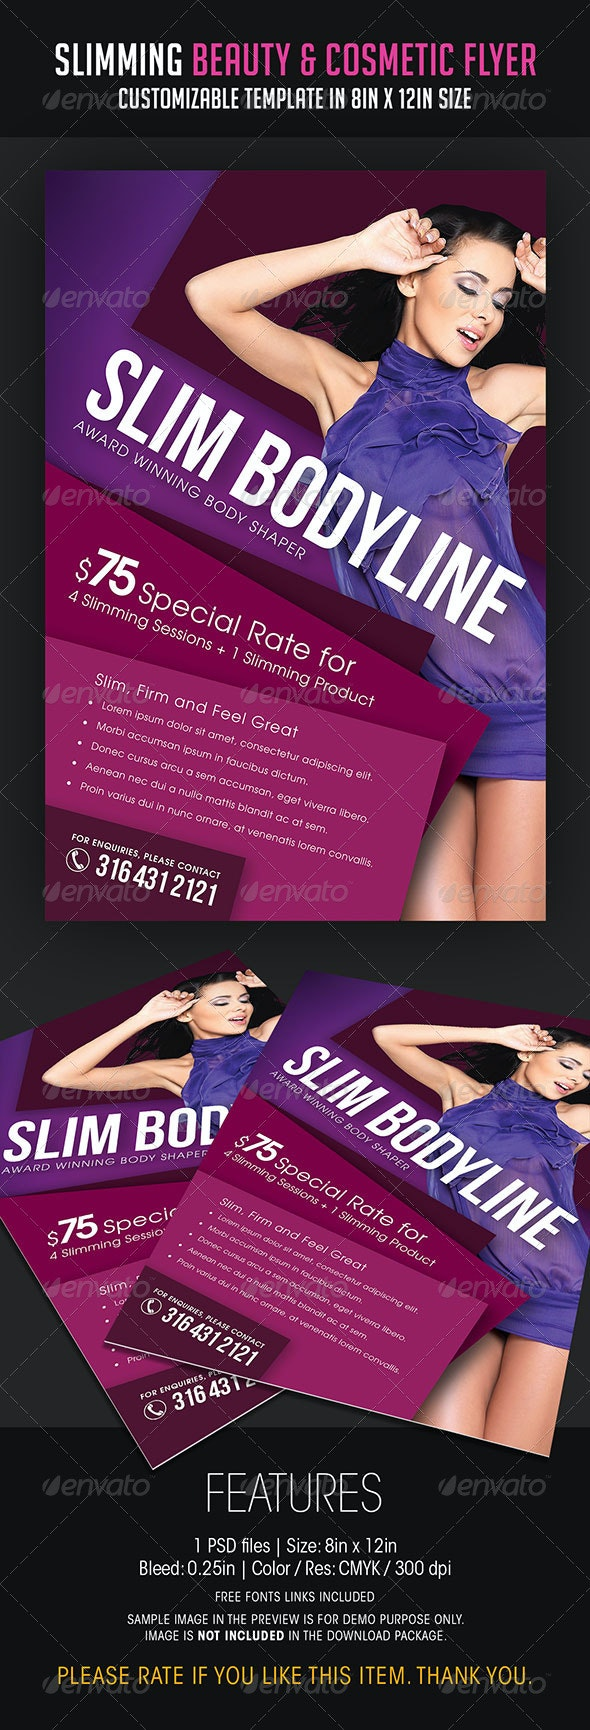 Slimming Beauty and Cosmetic Flyer - Flyers Print Templates